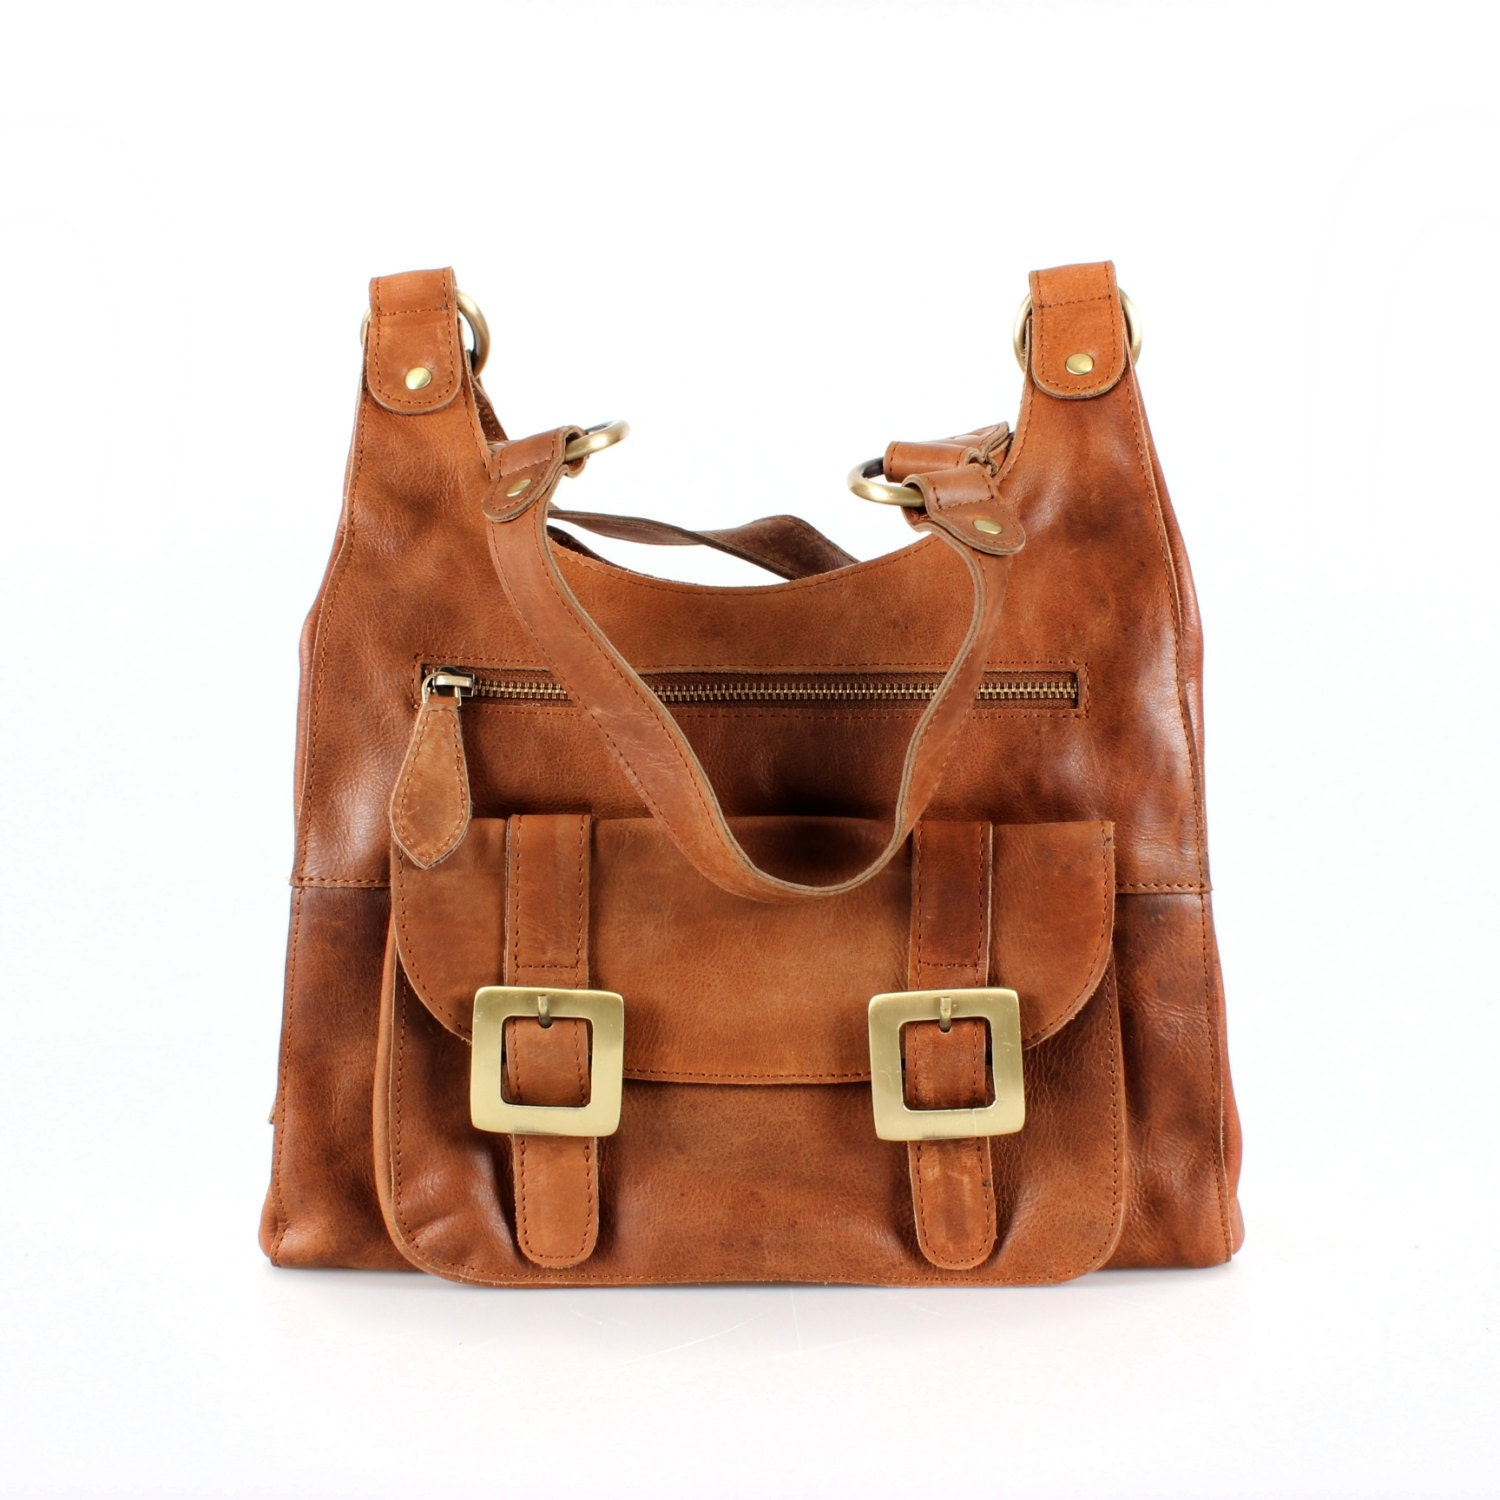 Leather Purse Shoulder Bag Handbag in Vintage Tan